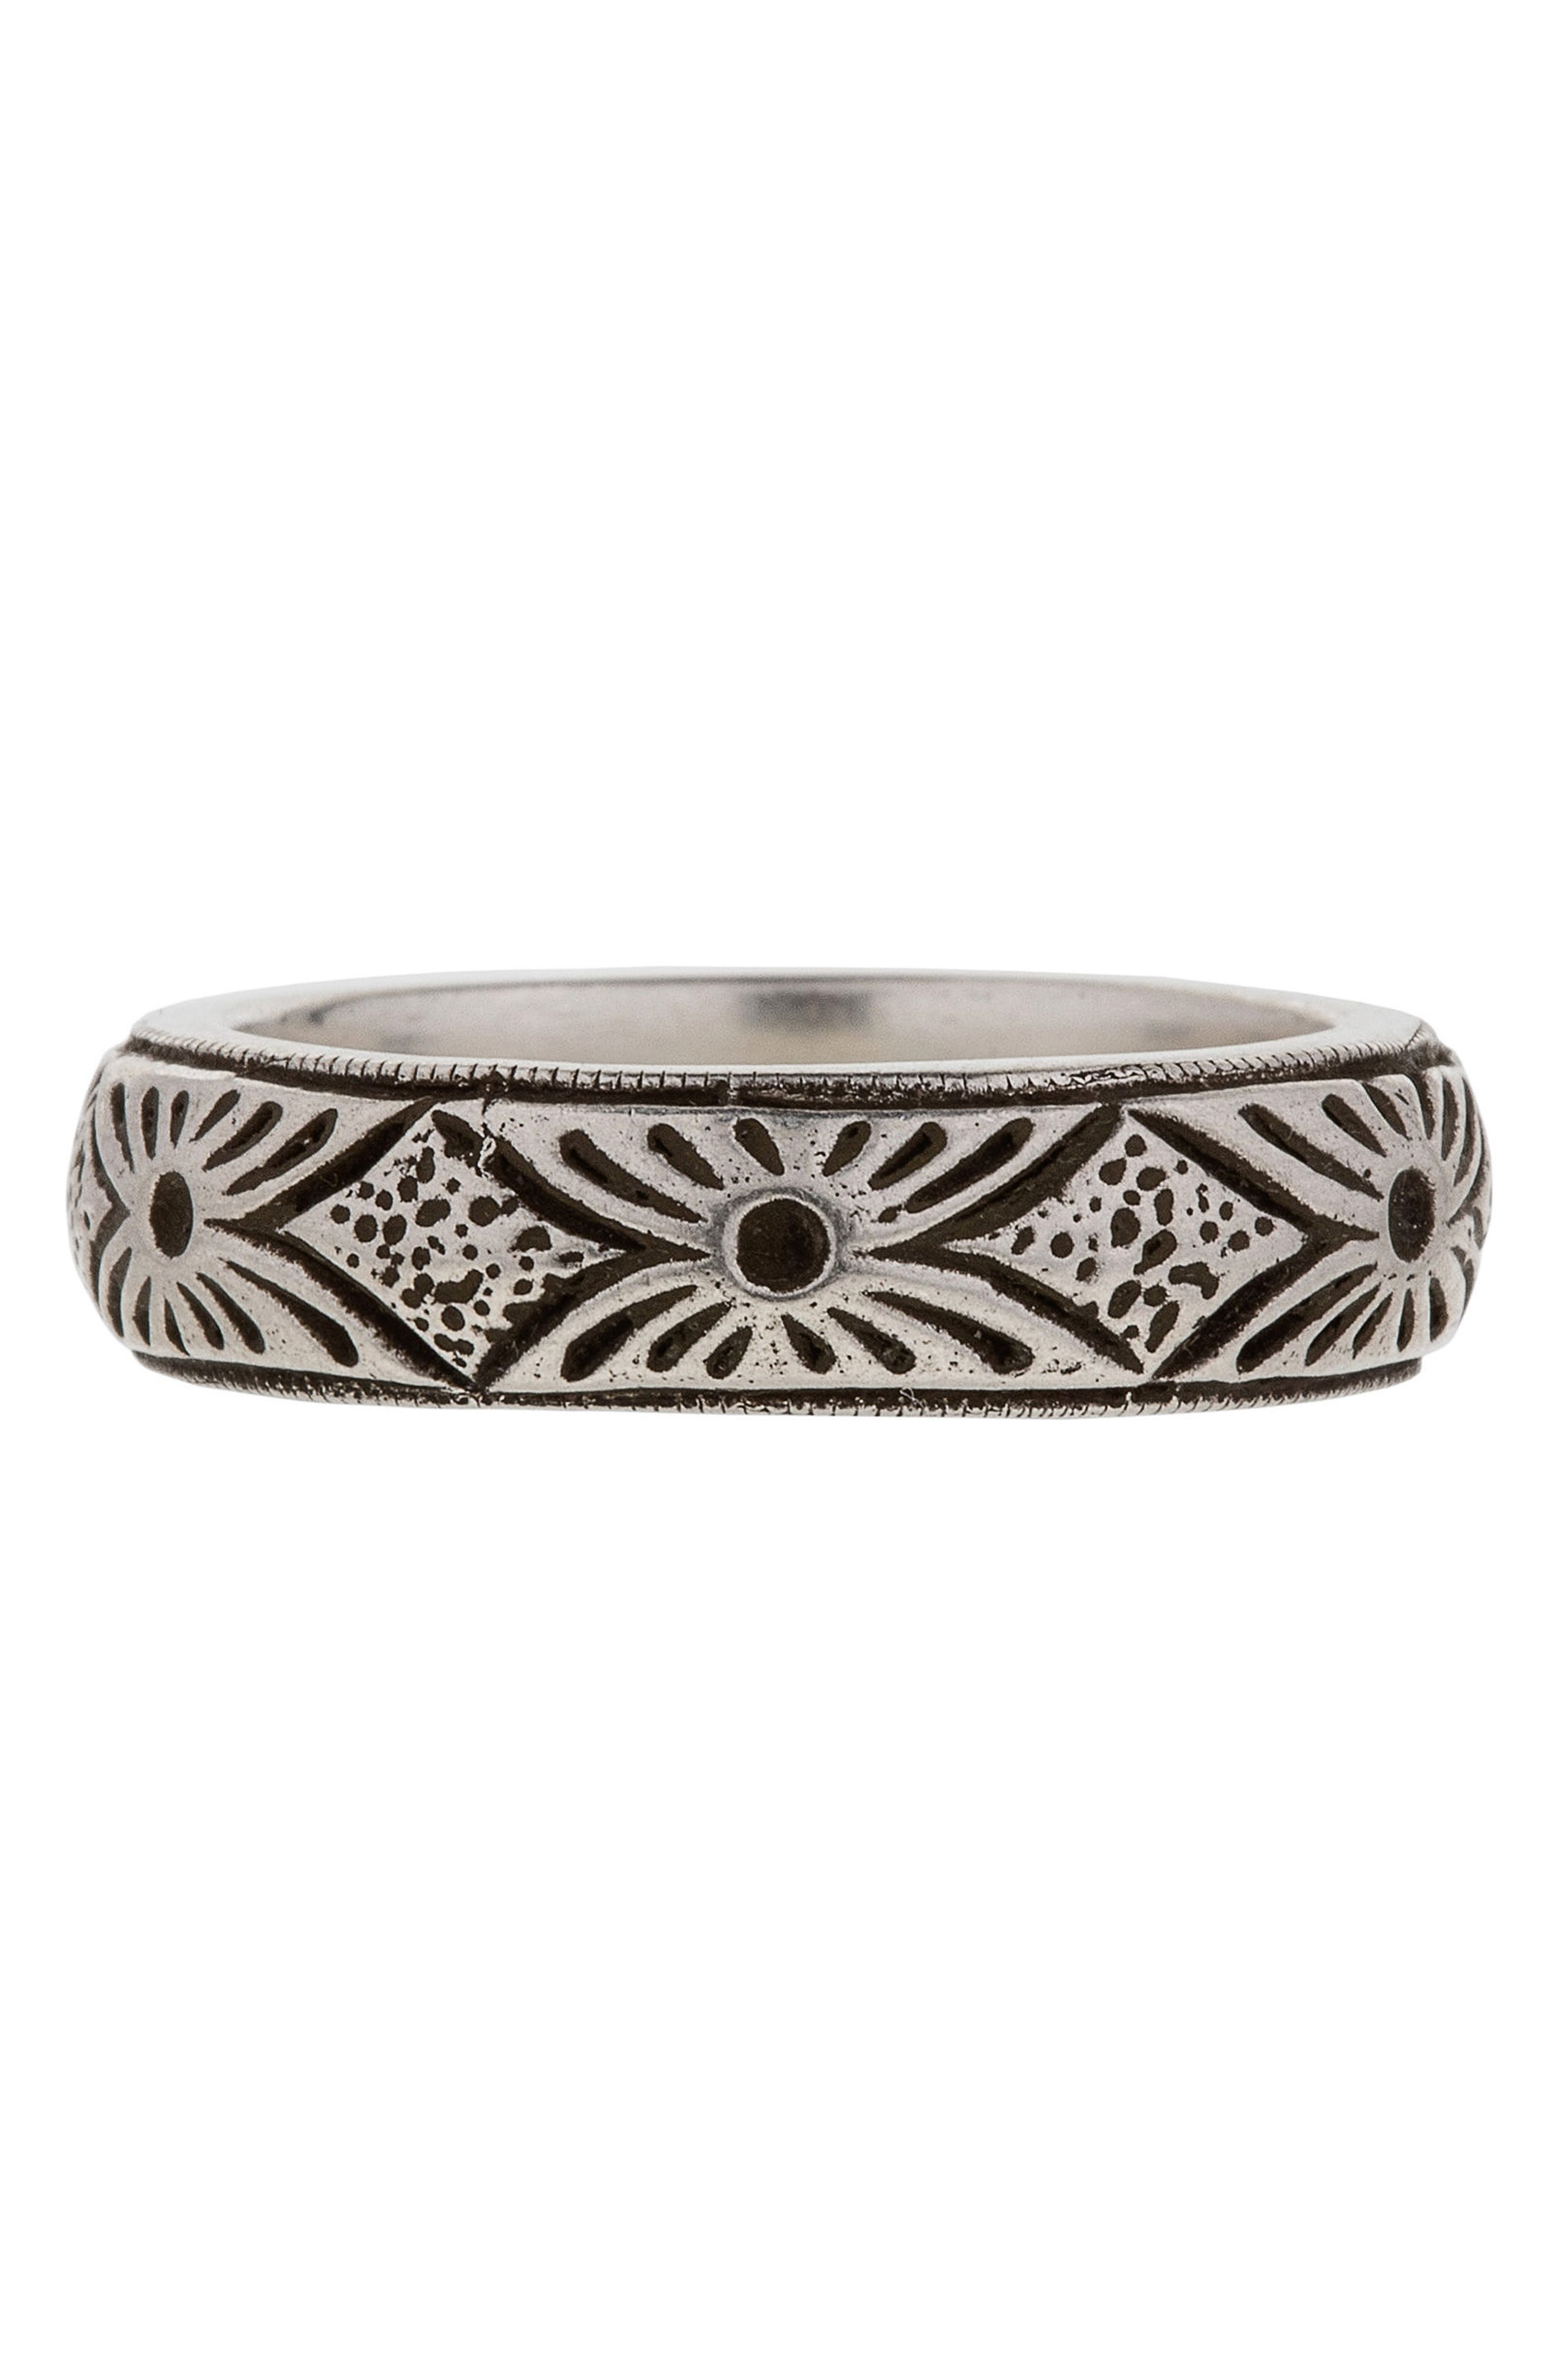 Yates Sterling Silver Ring,                         Main,                         color, Silver